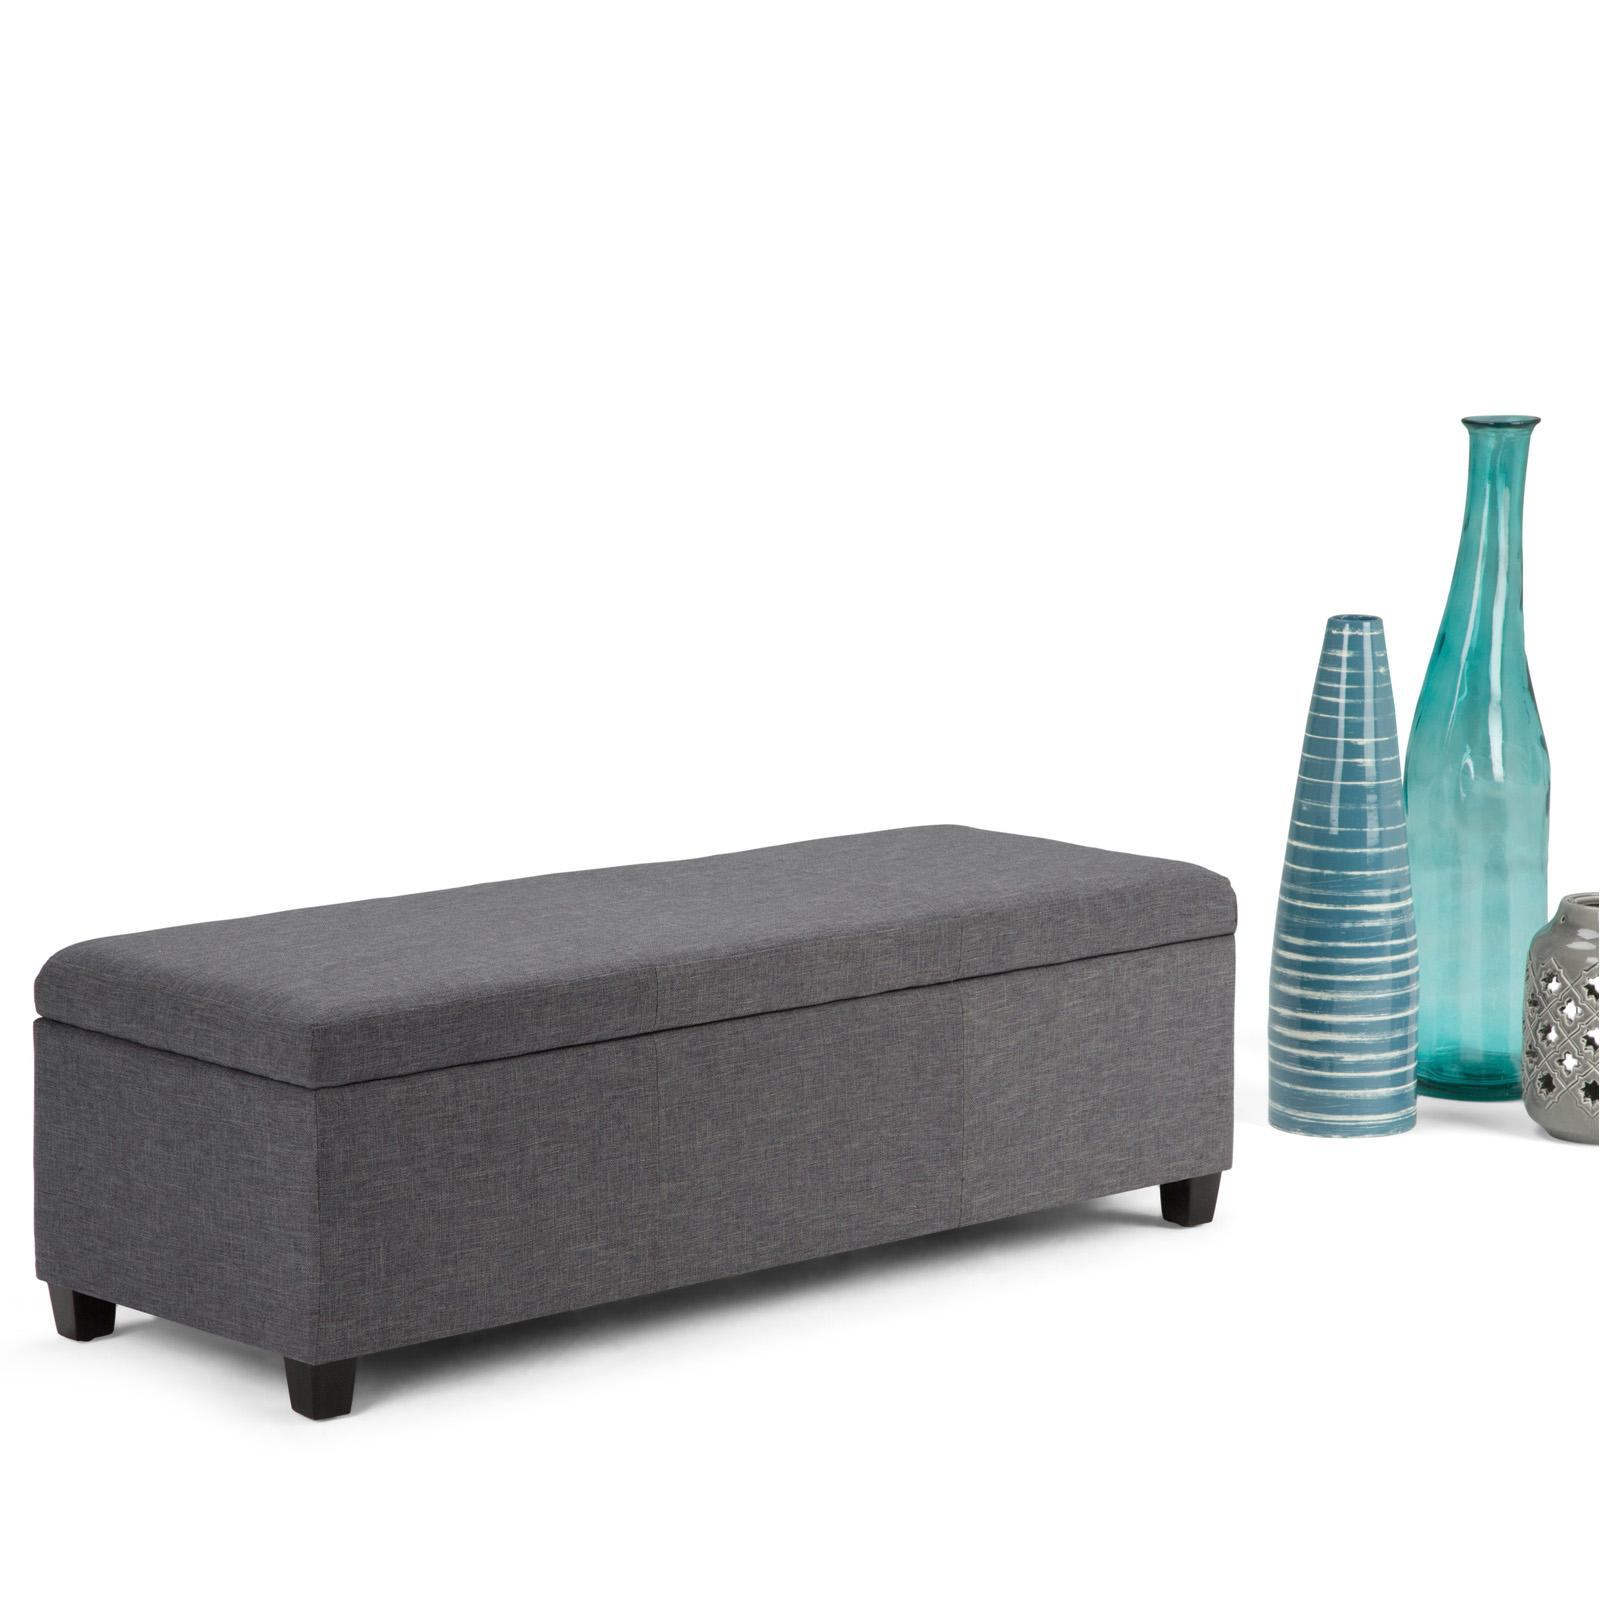 Brooklyn & Max Avalon Linen Storage Bench - AXCF18-GL